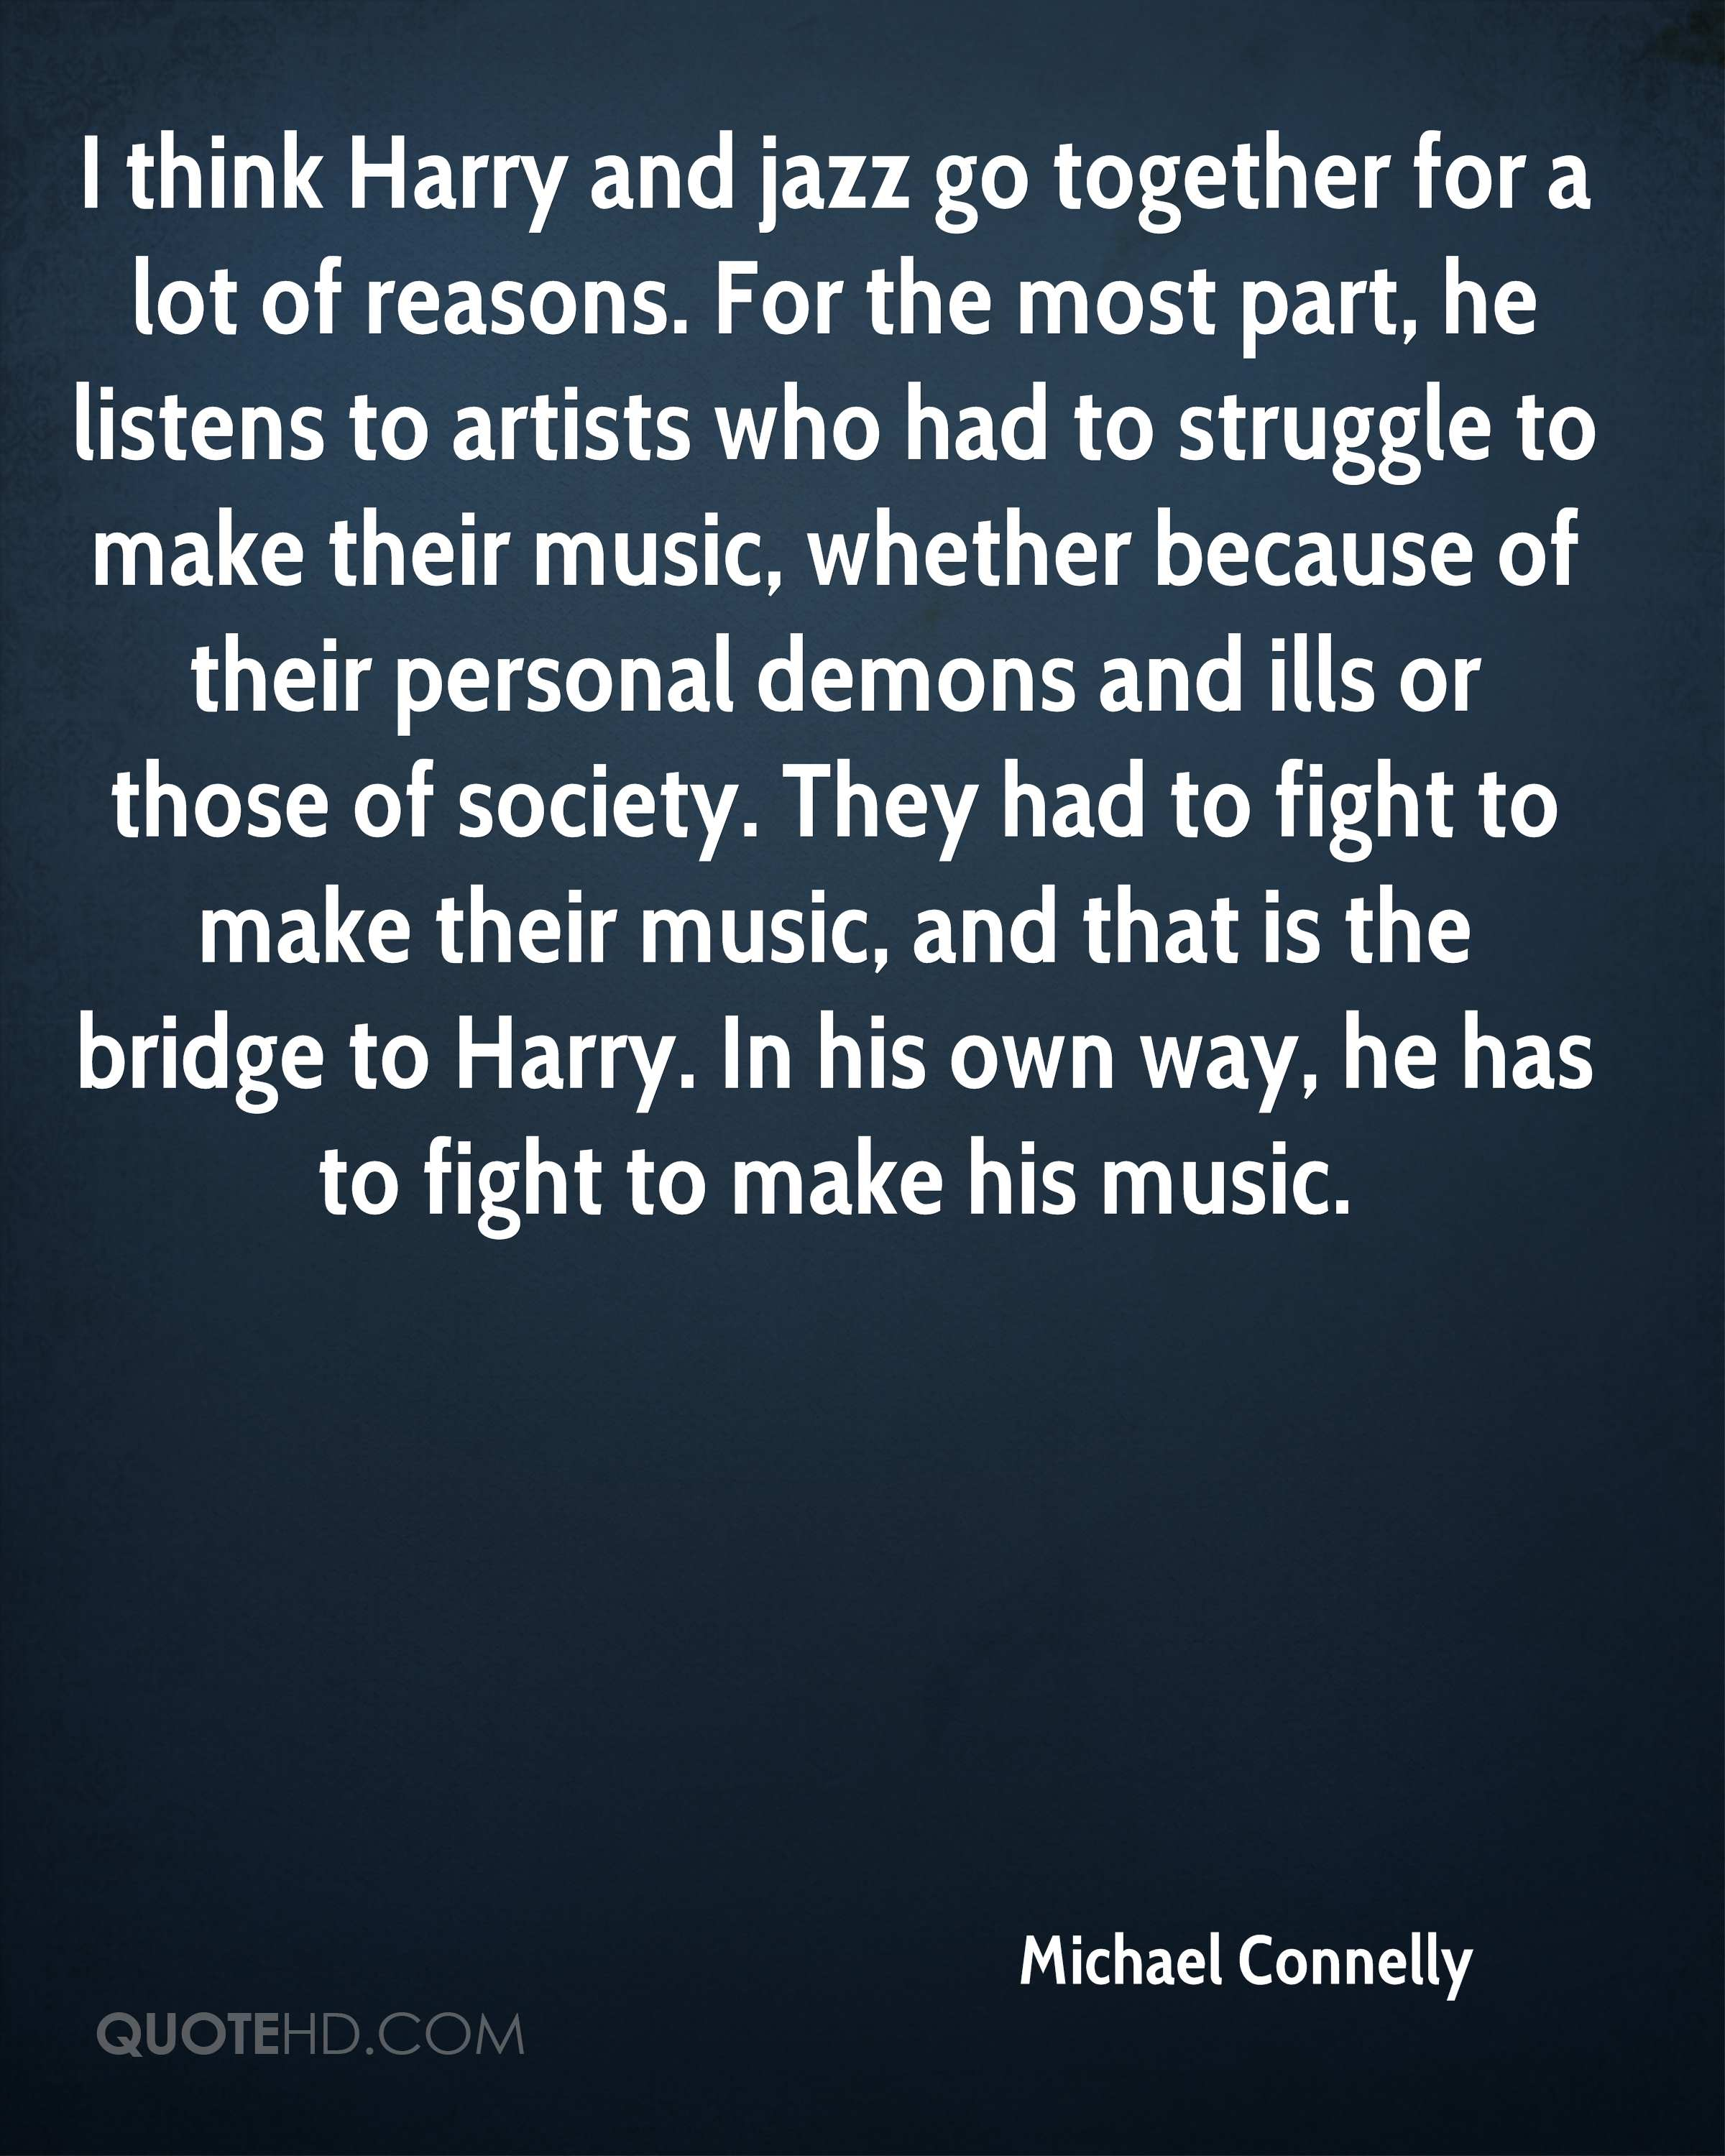 I think Harry and jazz go together for a lot of reasons. For the most part, he listens to artists who had to struggle to make their music, whether because of their personal demons and ills or those of society. They had to fight to make their music, and that is the bridge to Harry. In his own way, he has to fight to make his music.